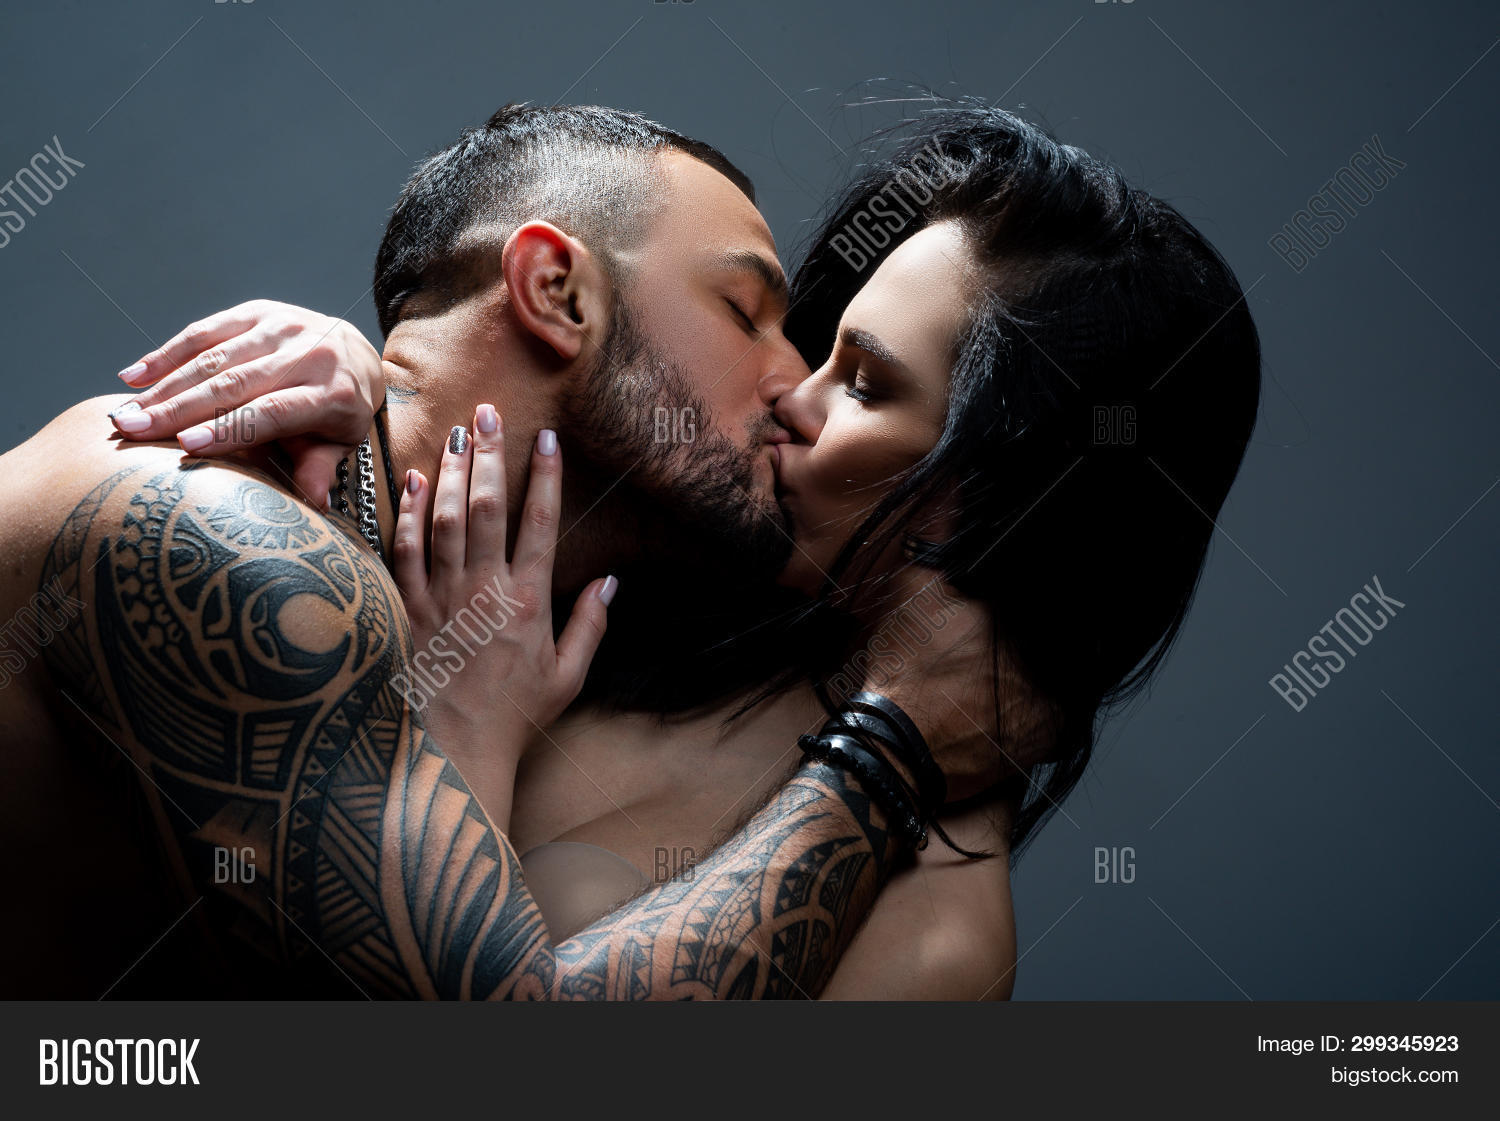 Passionate couple kissing. Romantic couple kissing. sexy couple in love. love and romance. valentines day. Young lovers. i love you. kissing couple. desire and temptation. hot relationship.